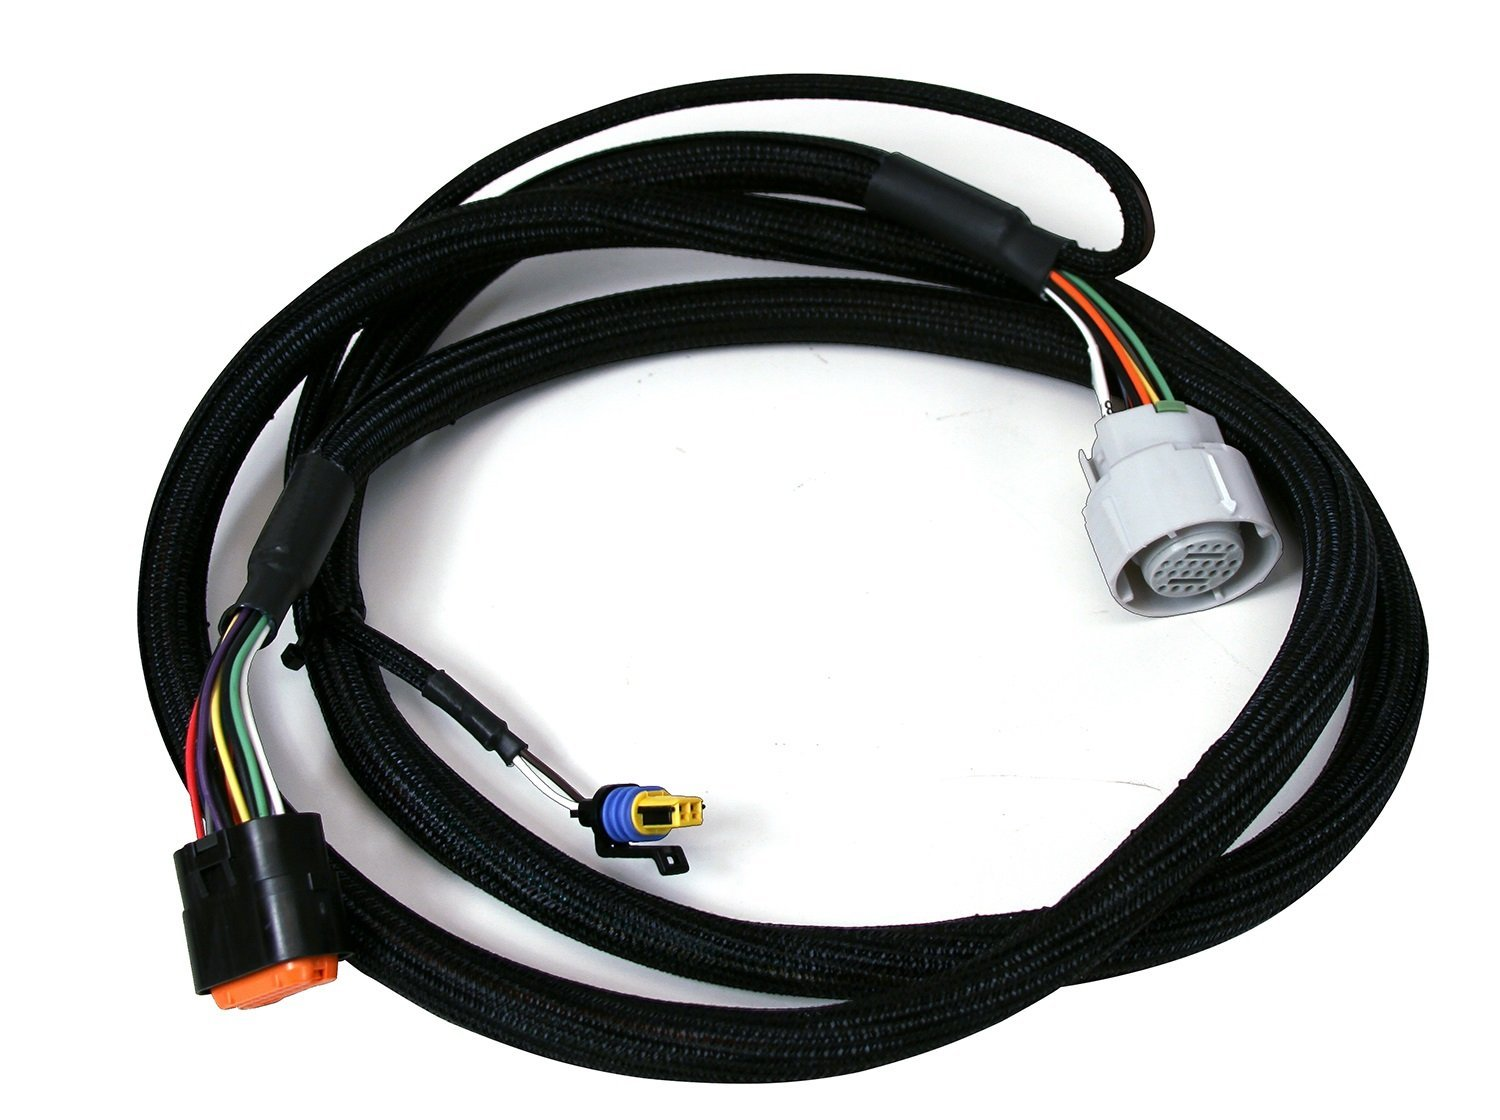 amazon com msd 2770 atomic transmission controller harness amazon com msd 2770 atomic transmission controller harness automotive